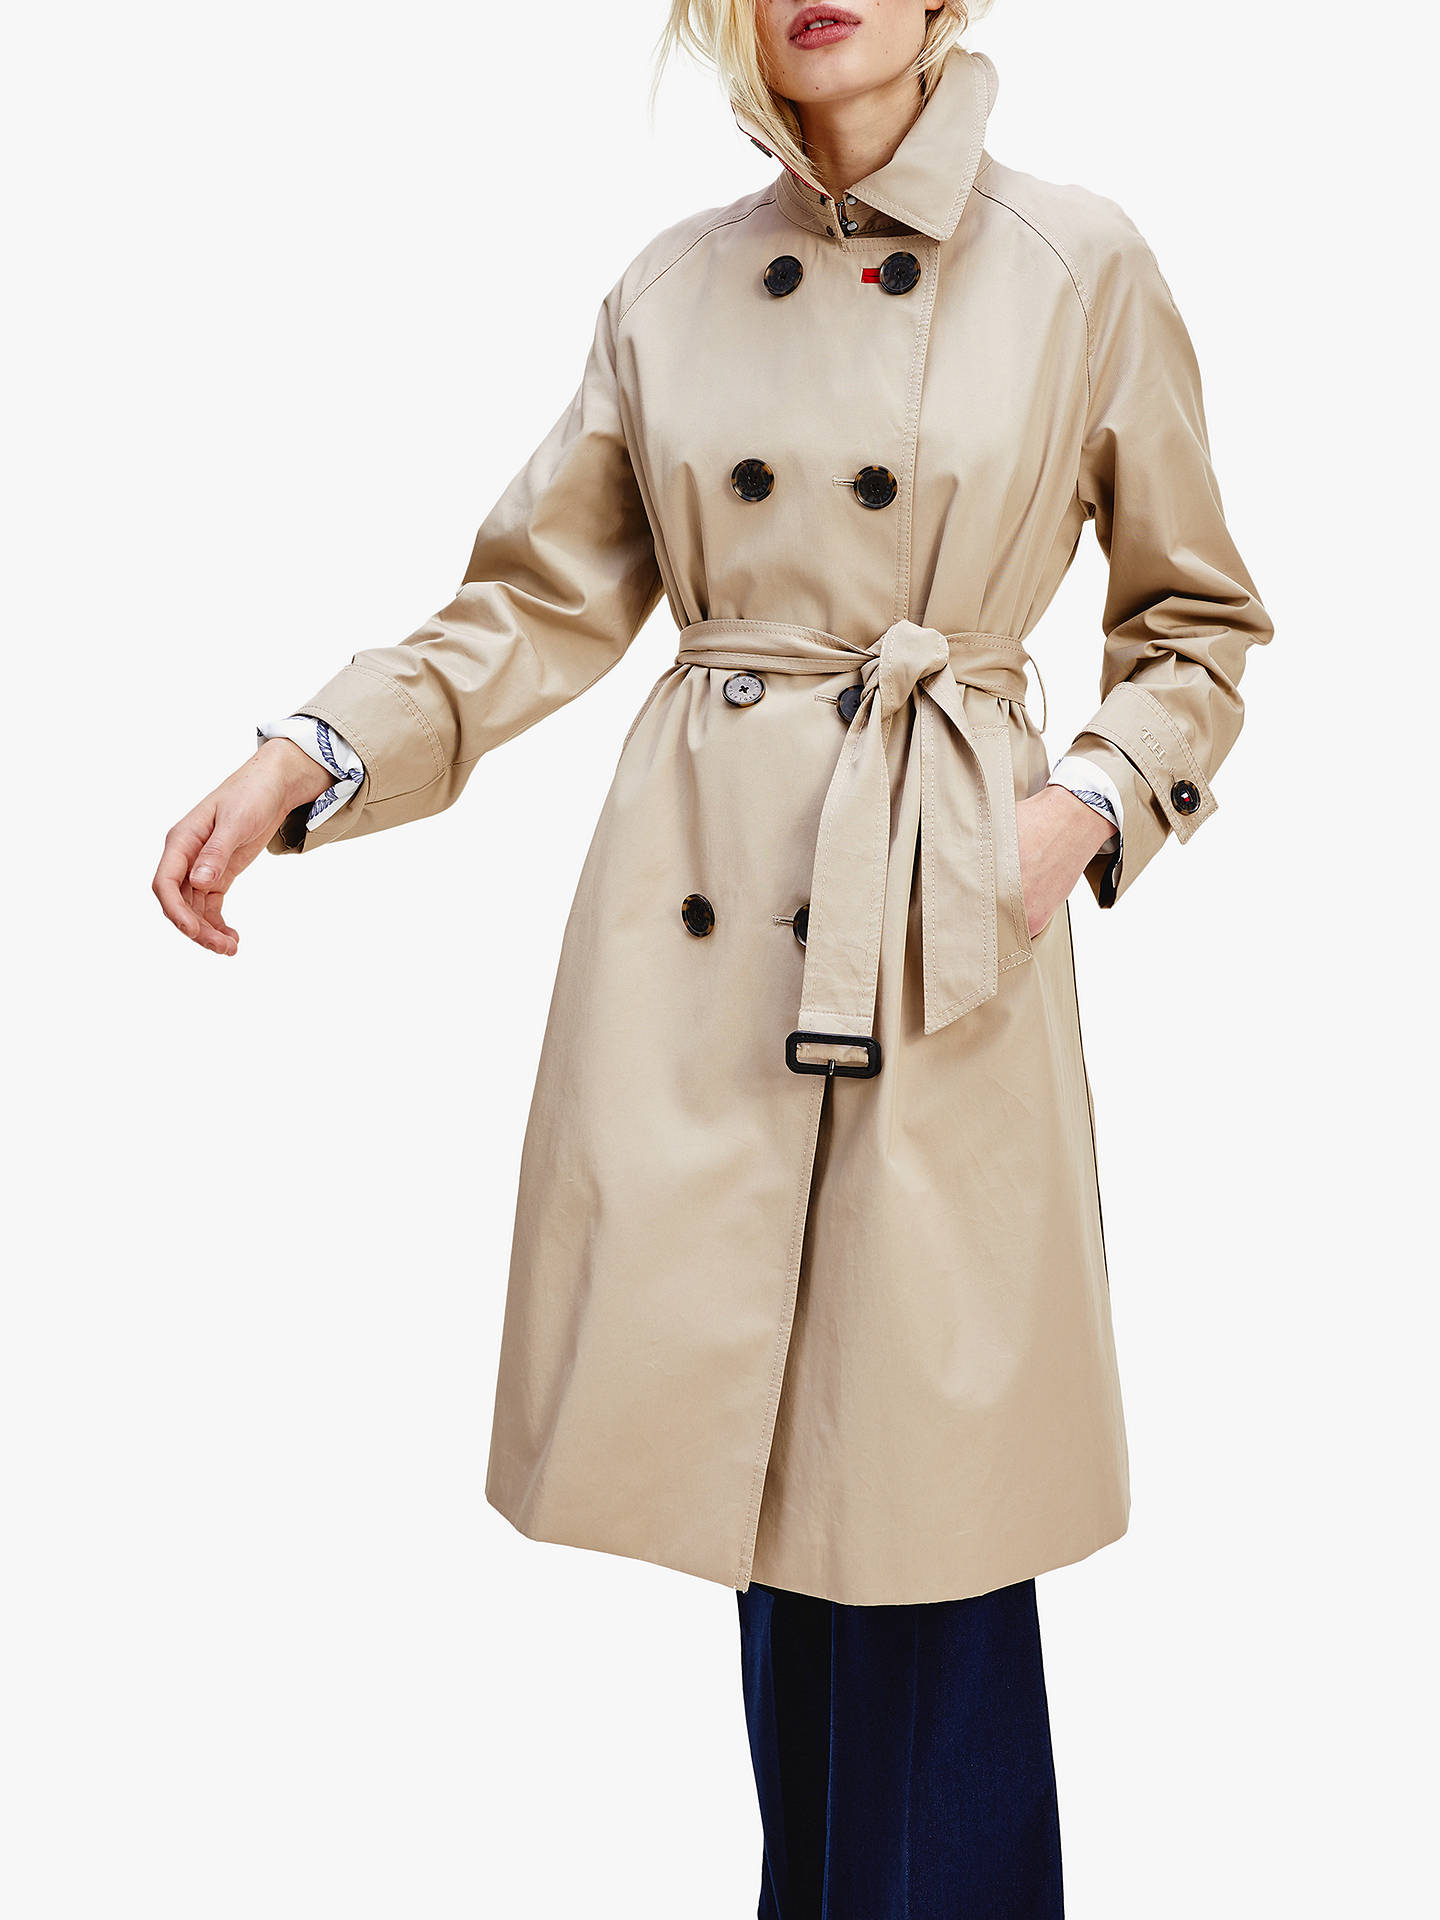 Vecchio uomo luogo comune Strada principale  Tommy Hilfiger Maxi Trench Coat, Beige at John Lewis & Partners